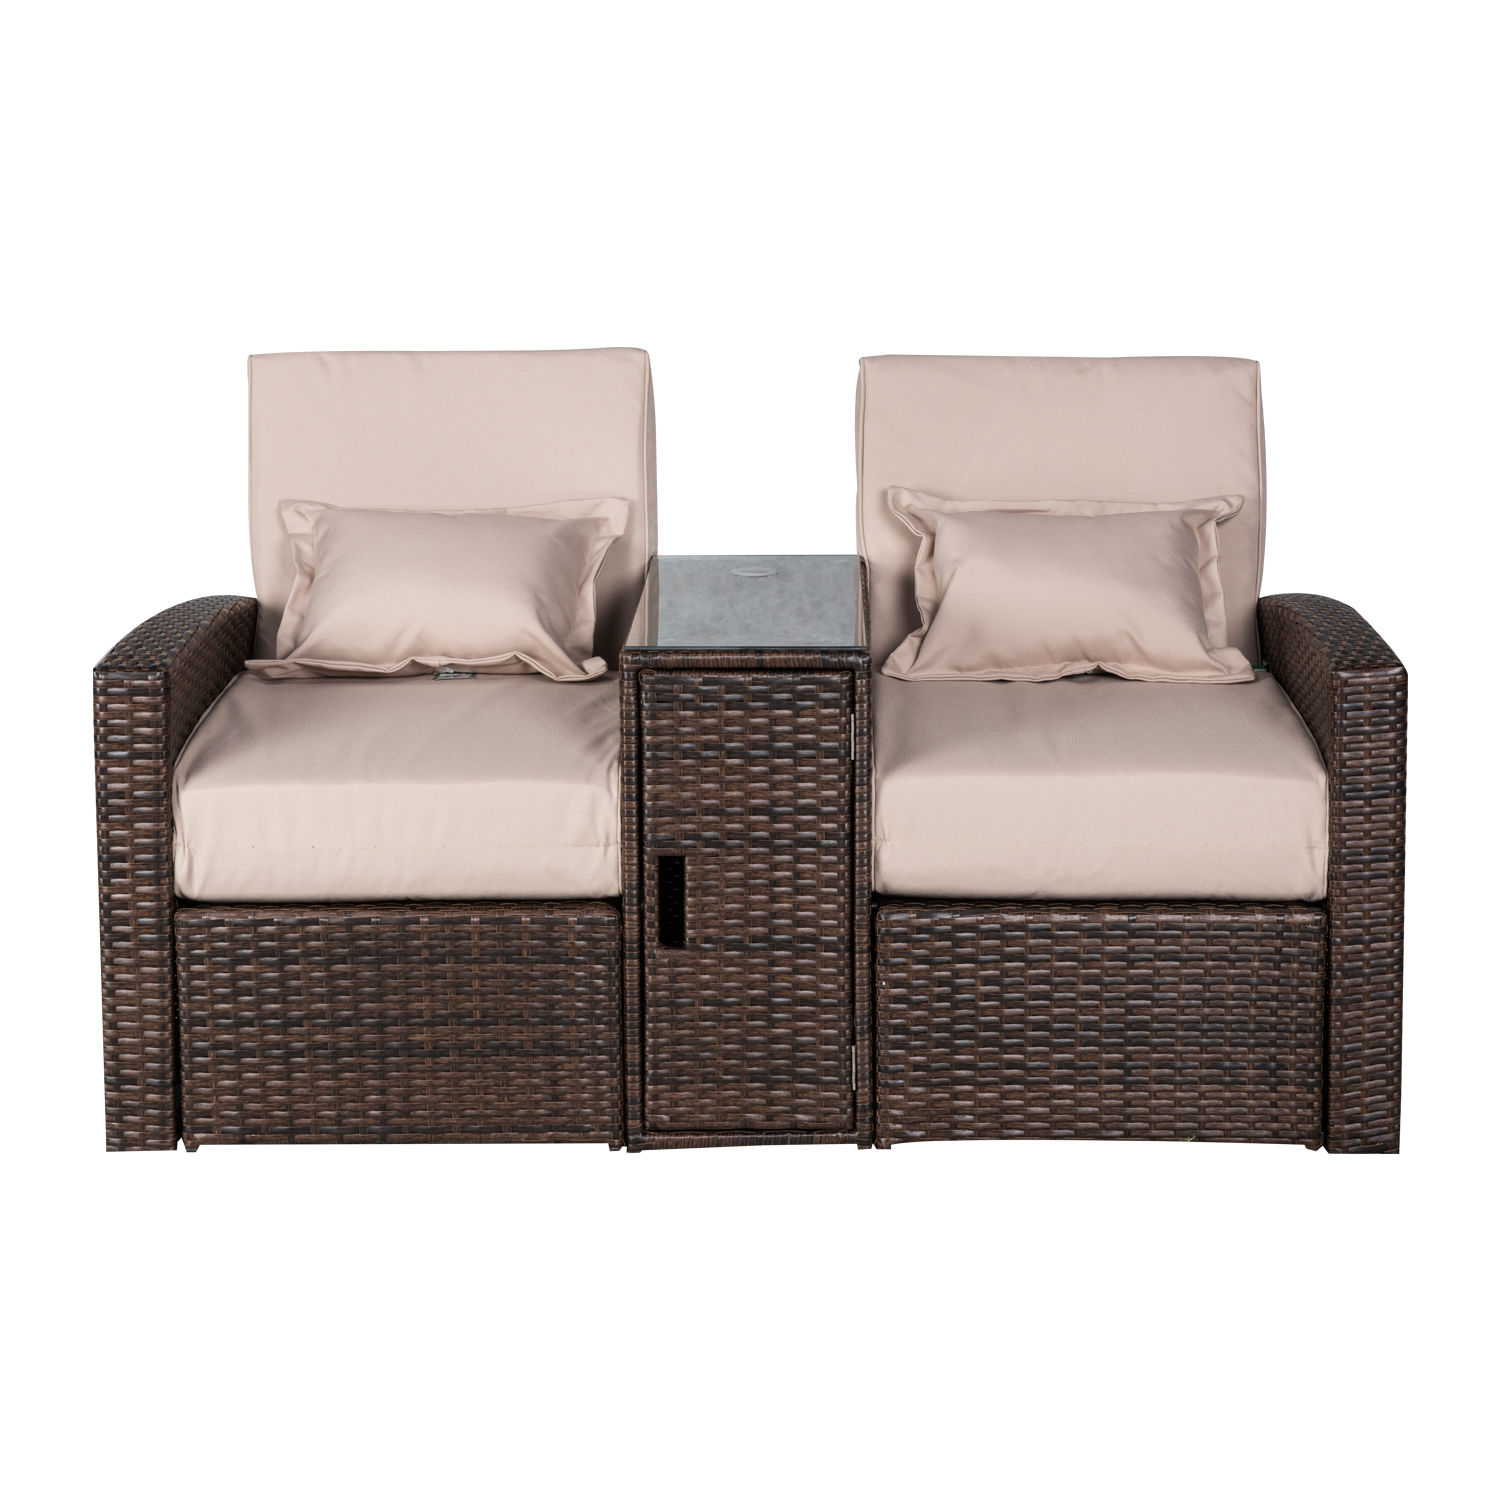 outdoor chaise lounge chair with ottoman vine 3pc patio rattan wicker furniture